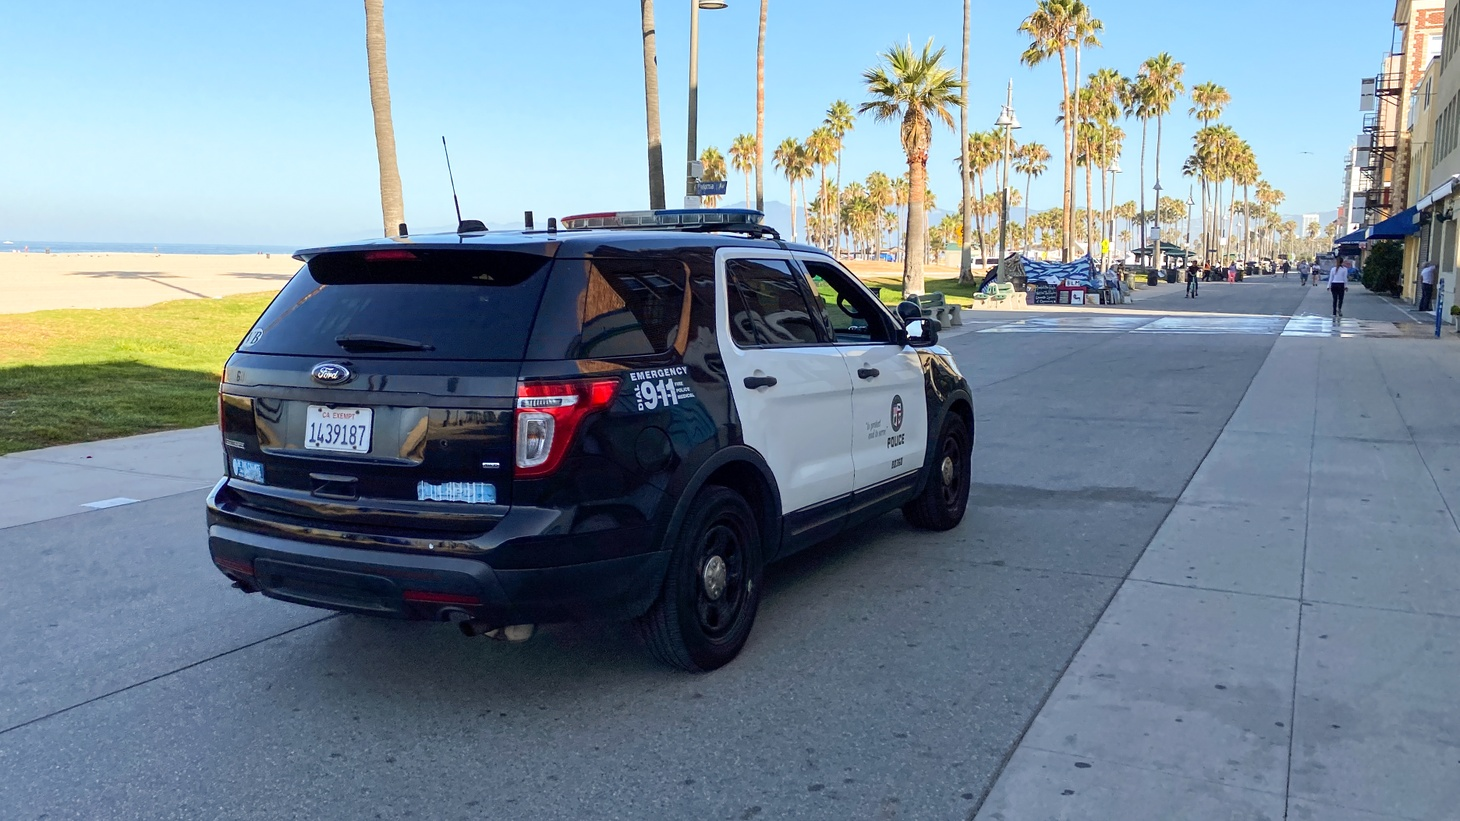 An LAPD vehicle on the Venice boardwalk, July 31, 2020. The California legislature must vote on all the remaining police reform bills by midnight.